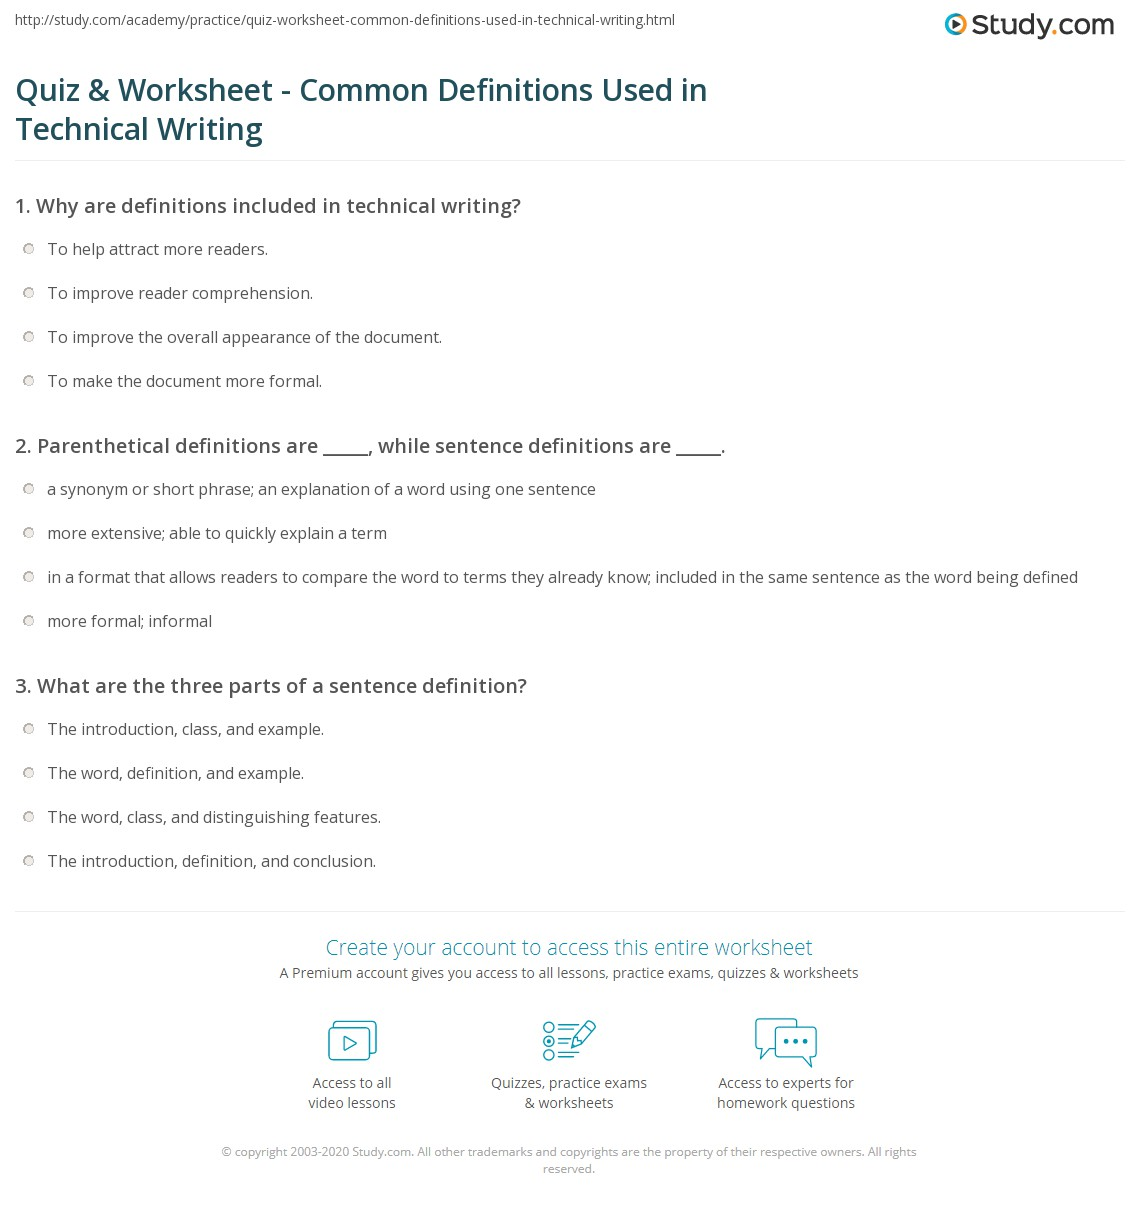 quiz & worksheet - common definitions used in technical writing